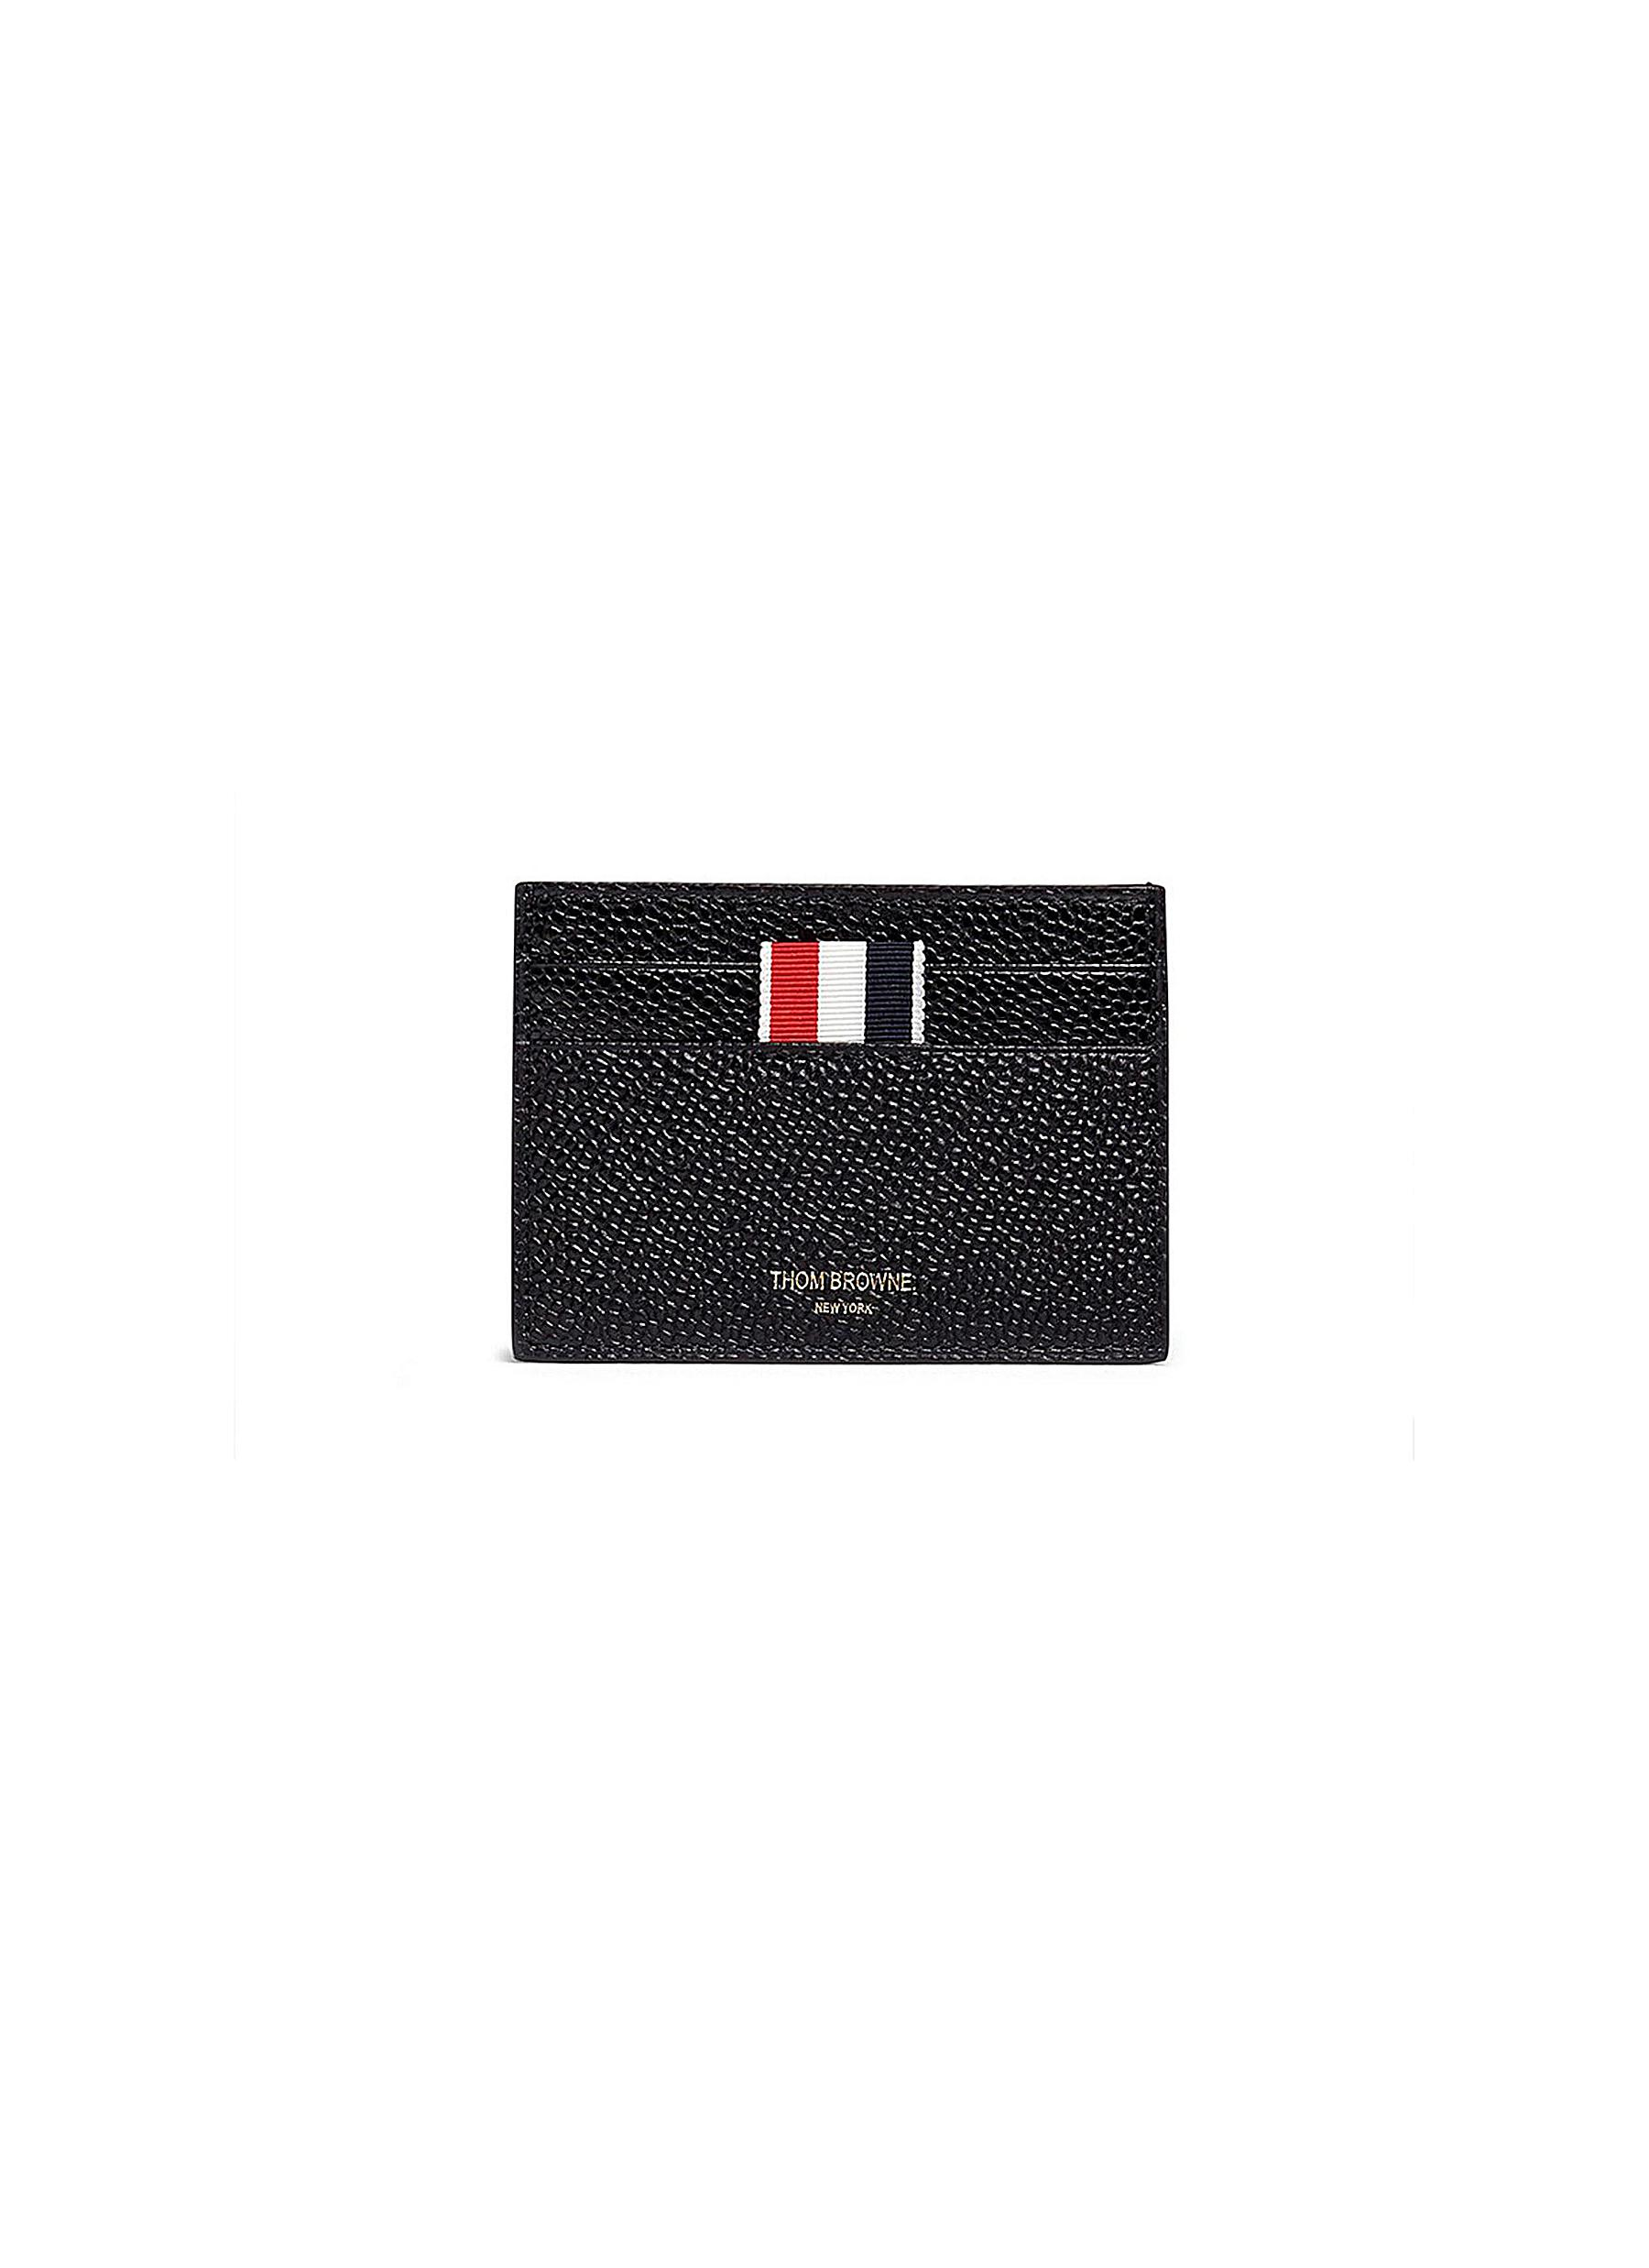 419e4b6b4a Main View - Click To Enlarge - THOM BROWNE - Pebble grain leather cardholder